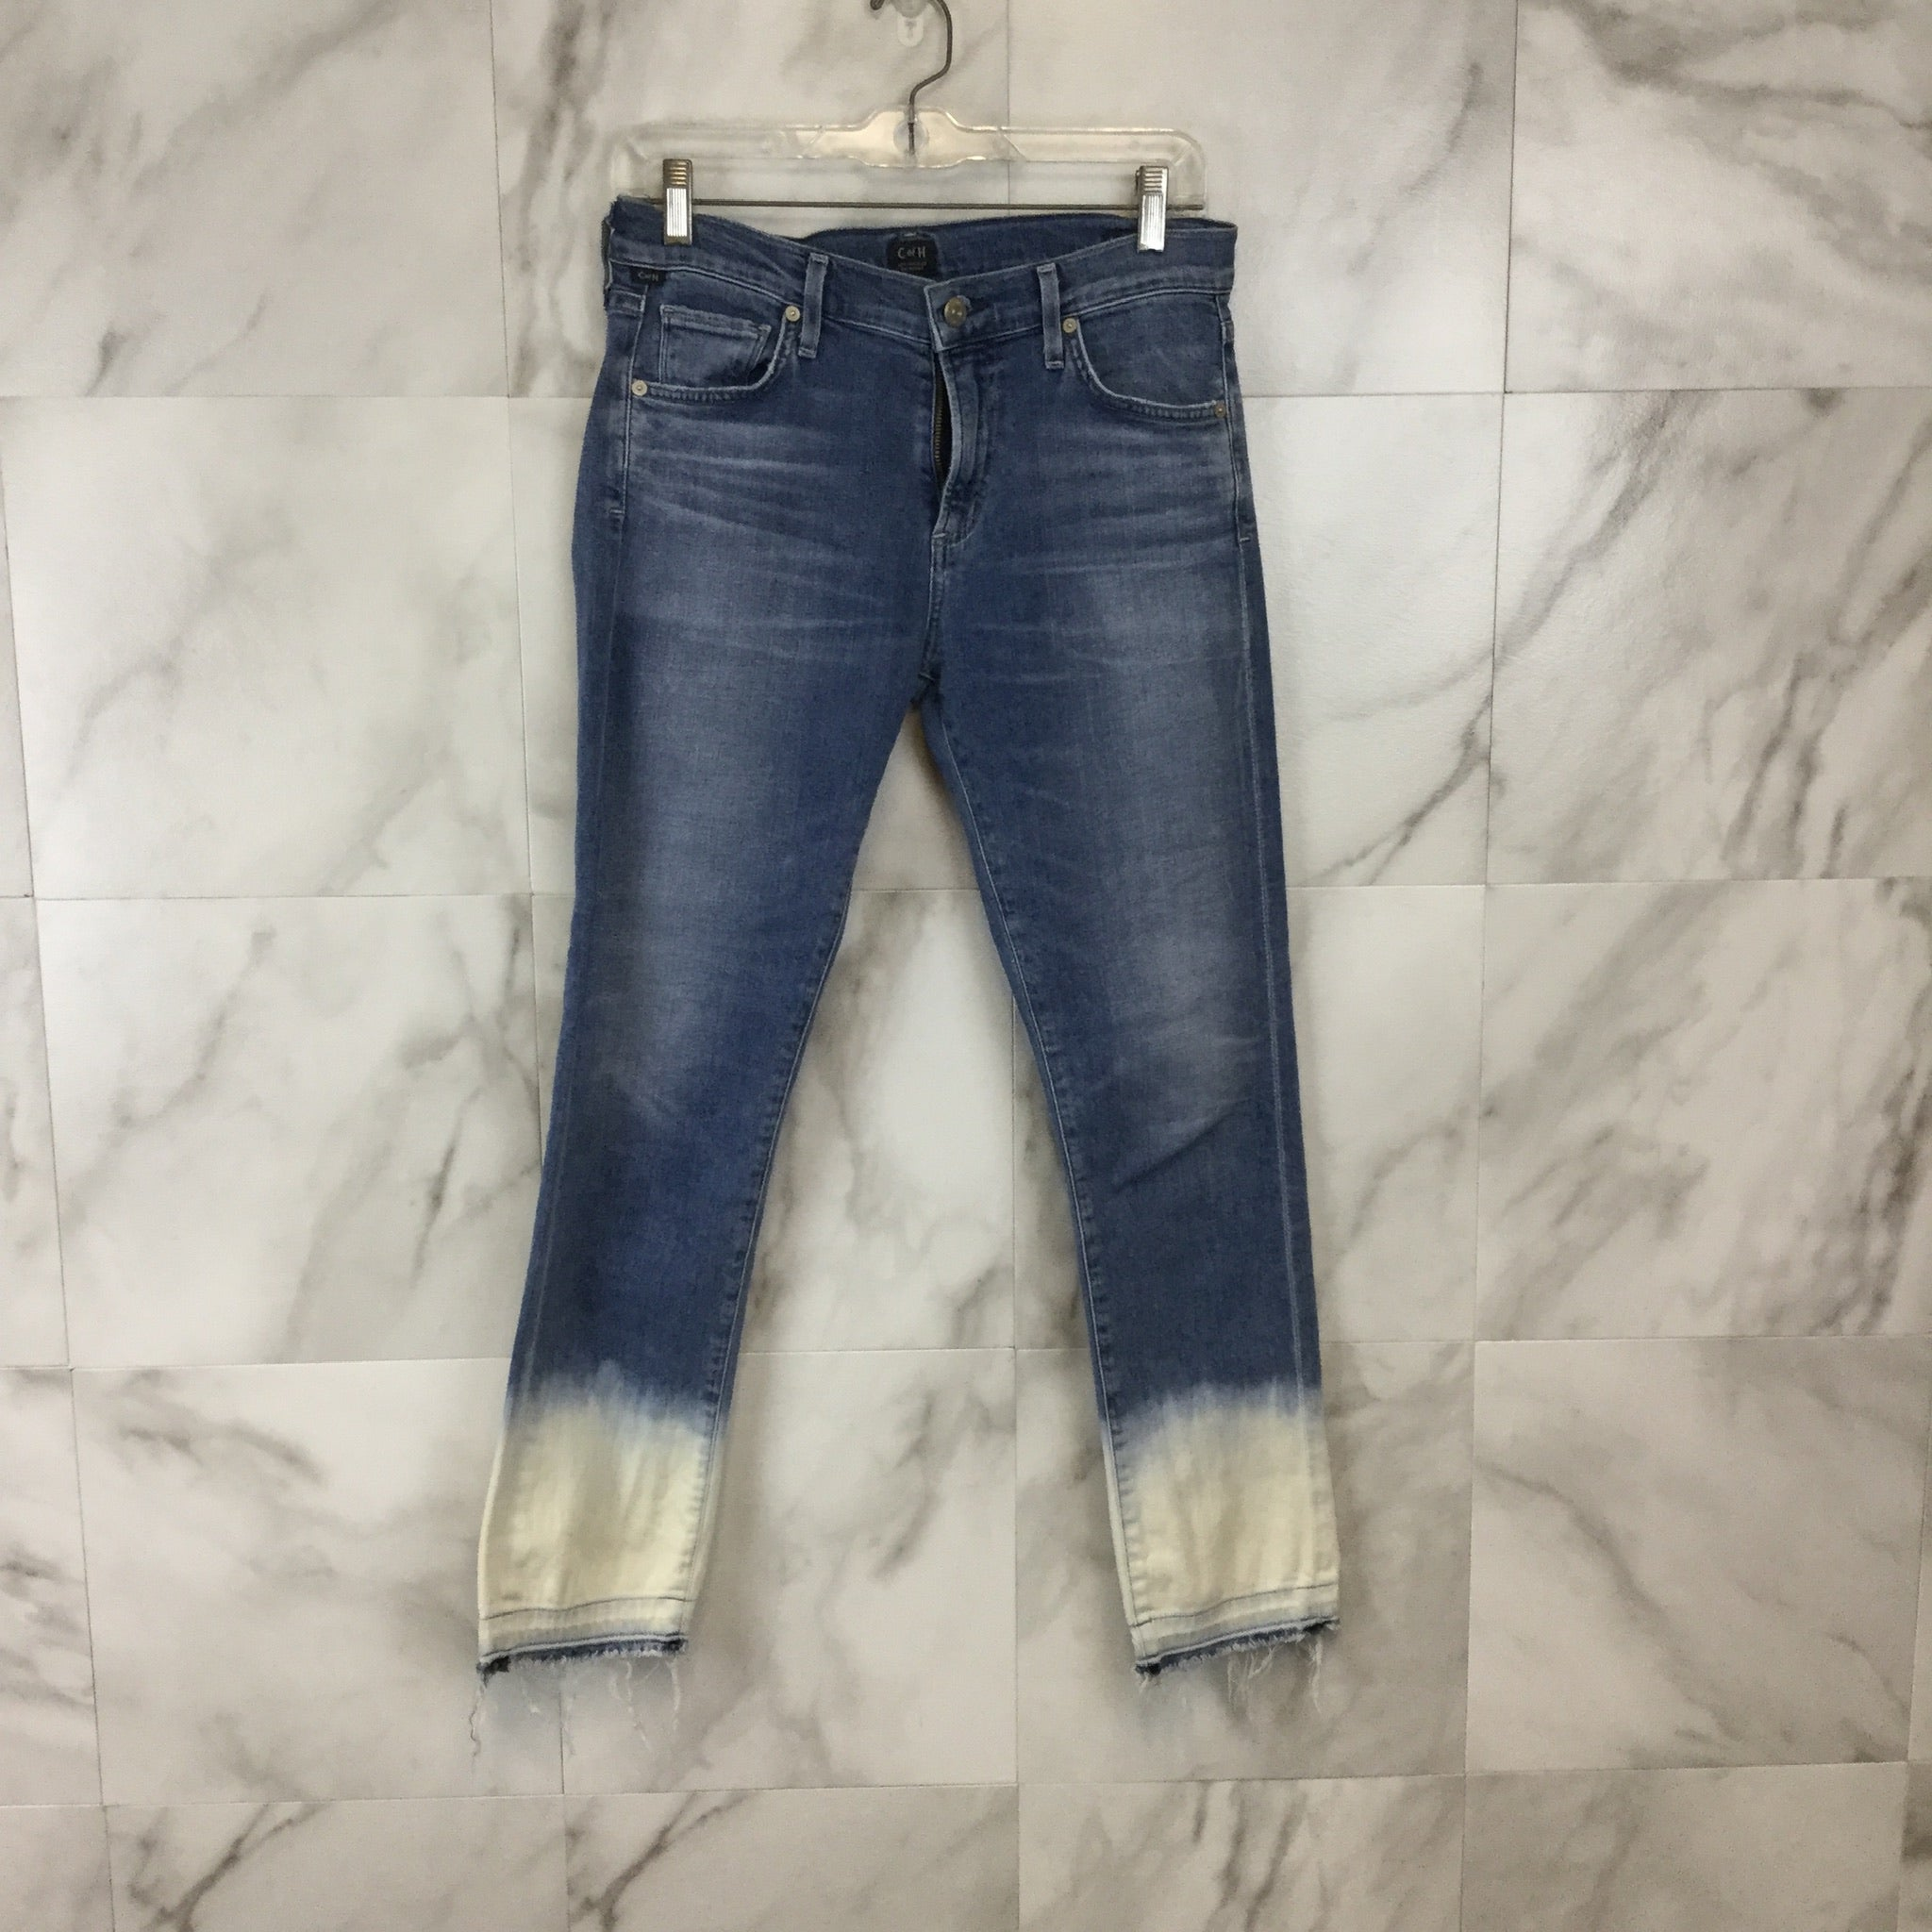 Citizens of Humanity Agnes Crop Jeans - Size 4